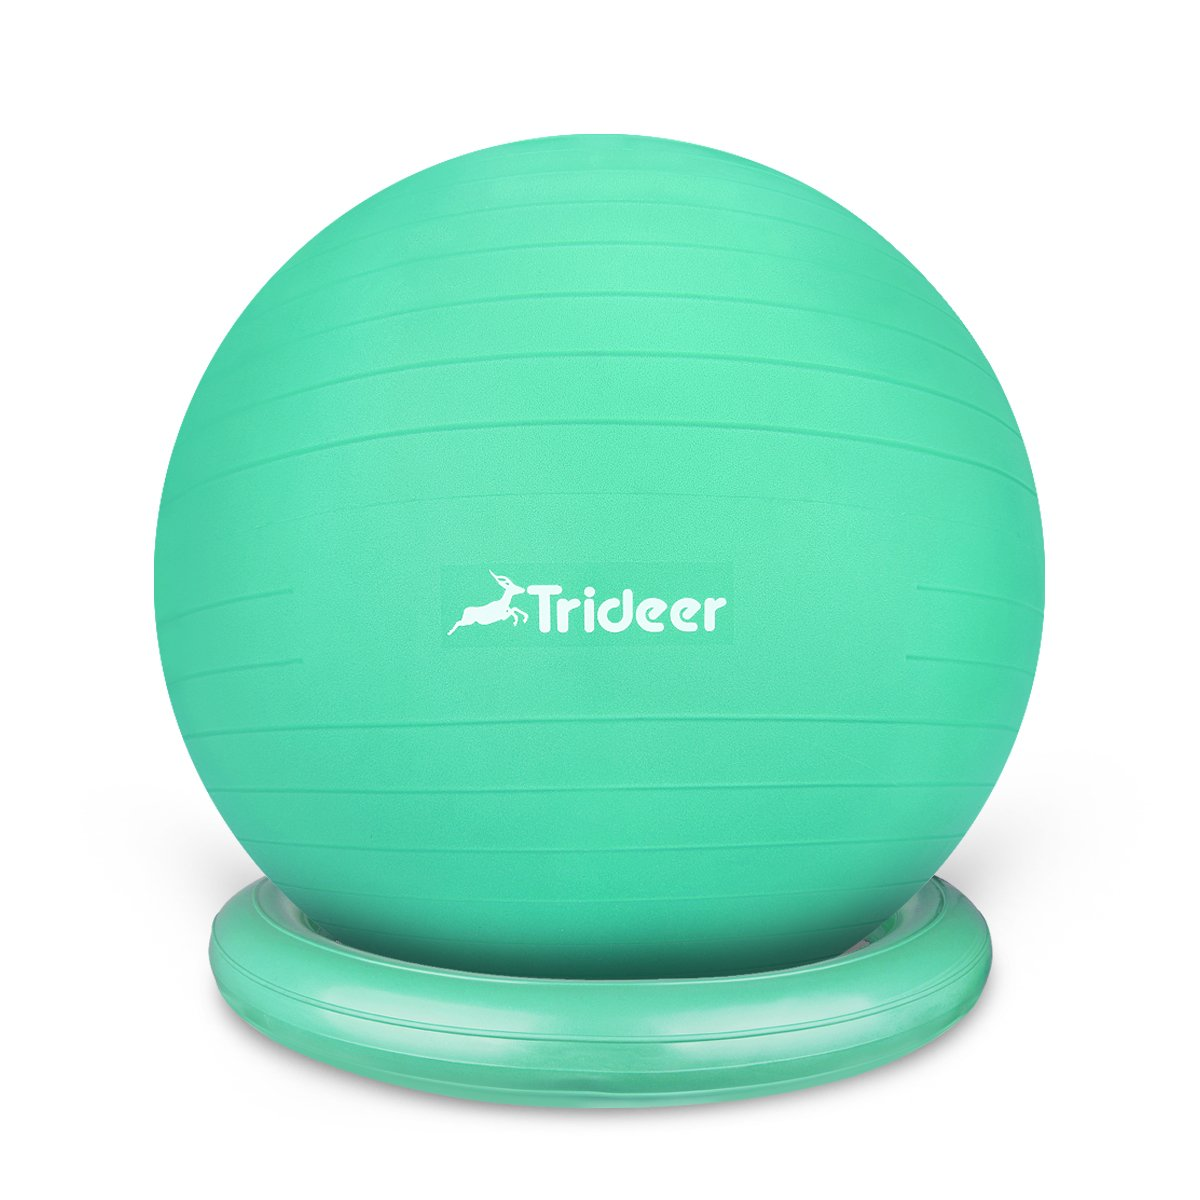 Trideer Ball Chair - Exercise Stability Yoga Ball with Base for Home and Office Desk, Ball Seat, Flexible Seating with Ring & Pump, Improves Balance, Back Pain, Core Strength & Posture£¨Ball with Ring